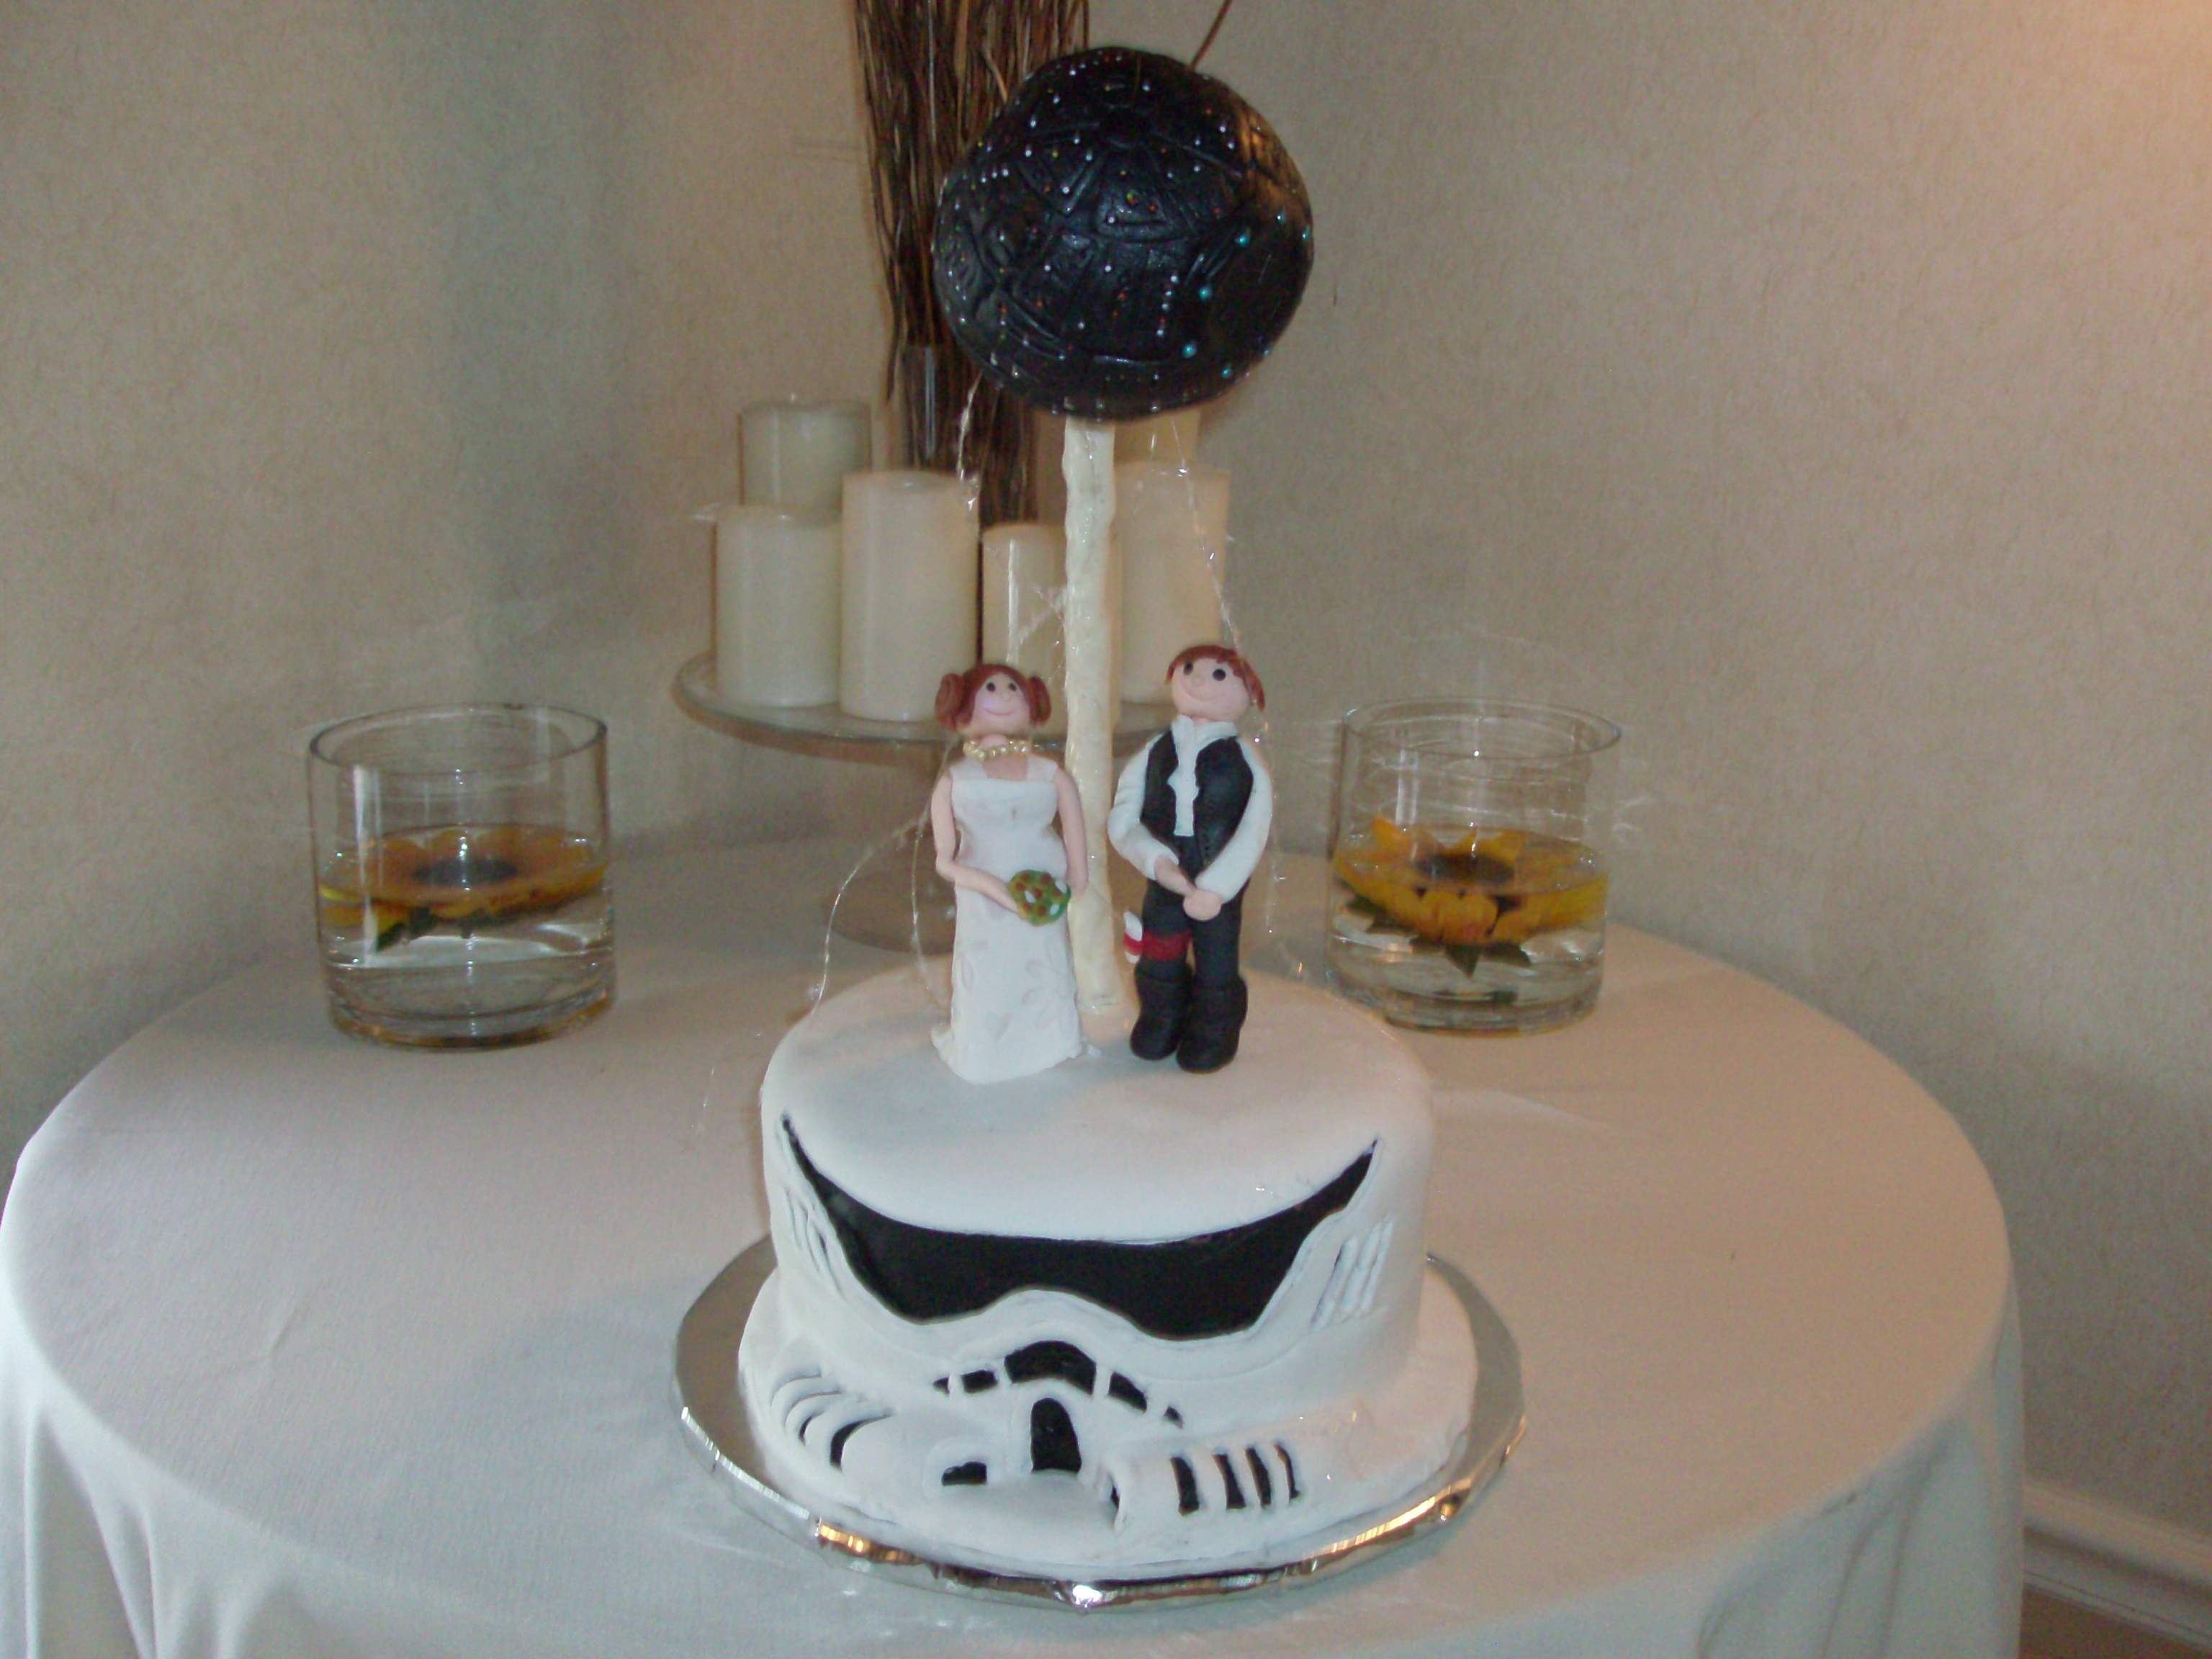 Star Wars Grooms Cake This was a groom cake for a wedding I did this past summer. Storm Trooper for the base, Bride and Groom standing on top with the Death Star...